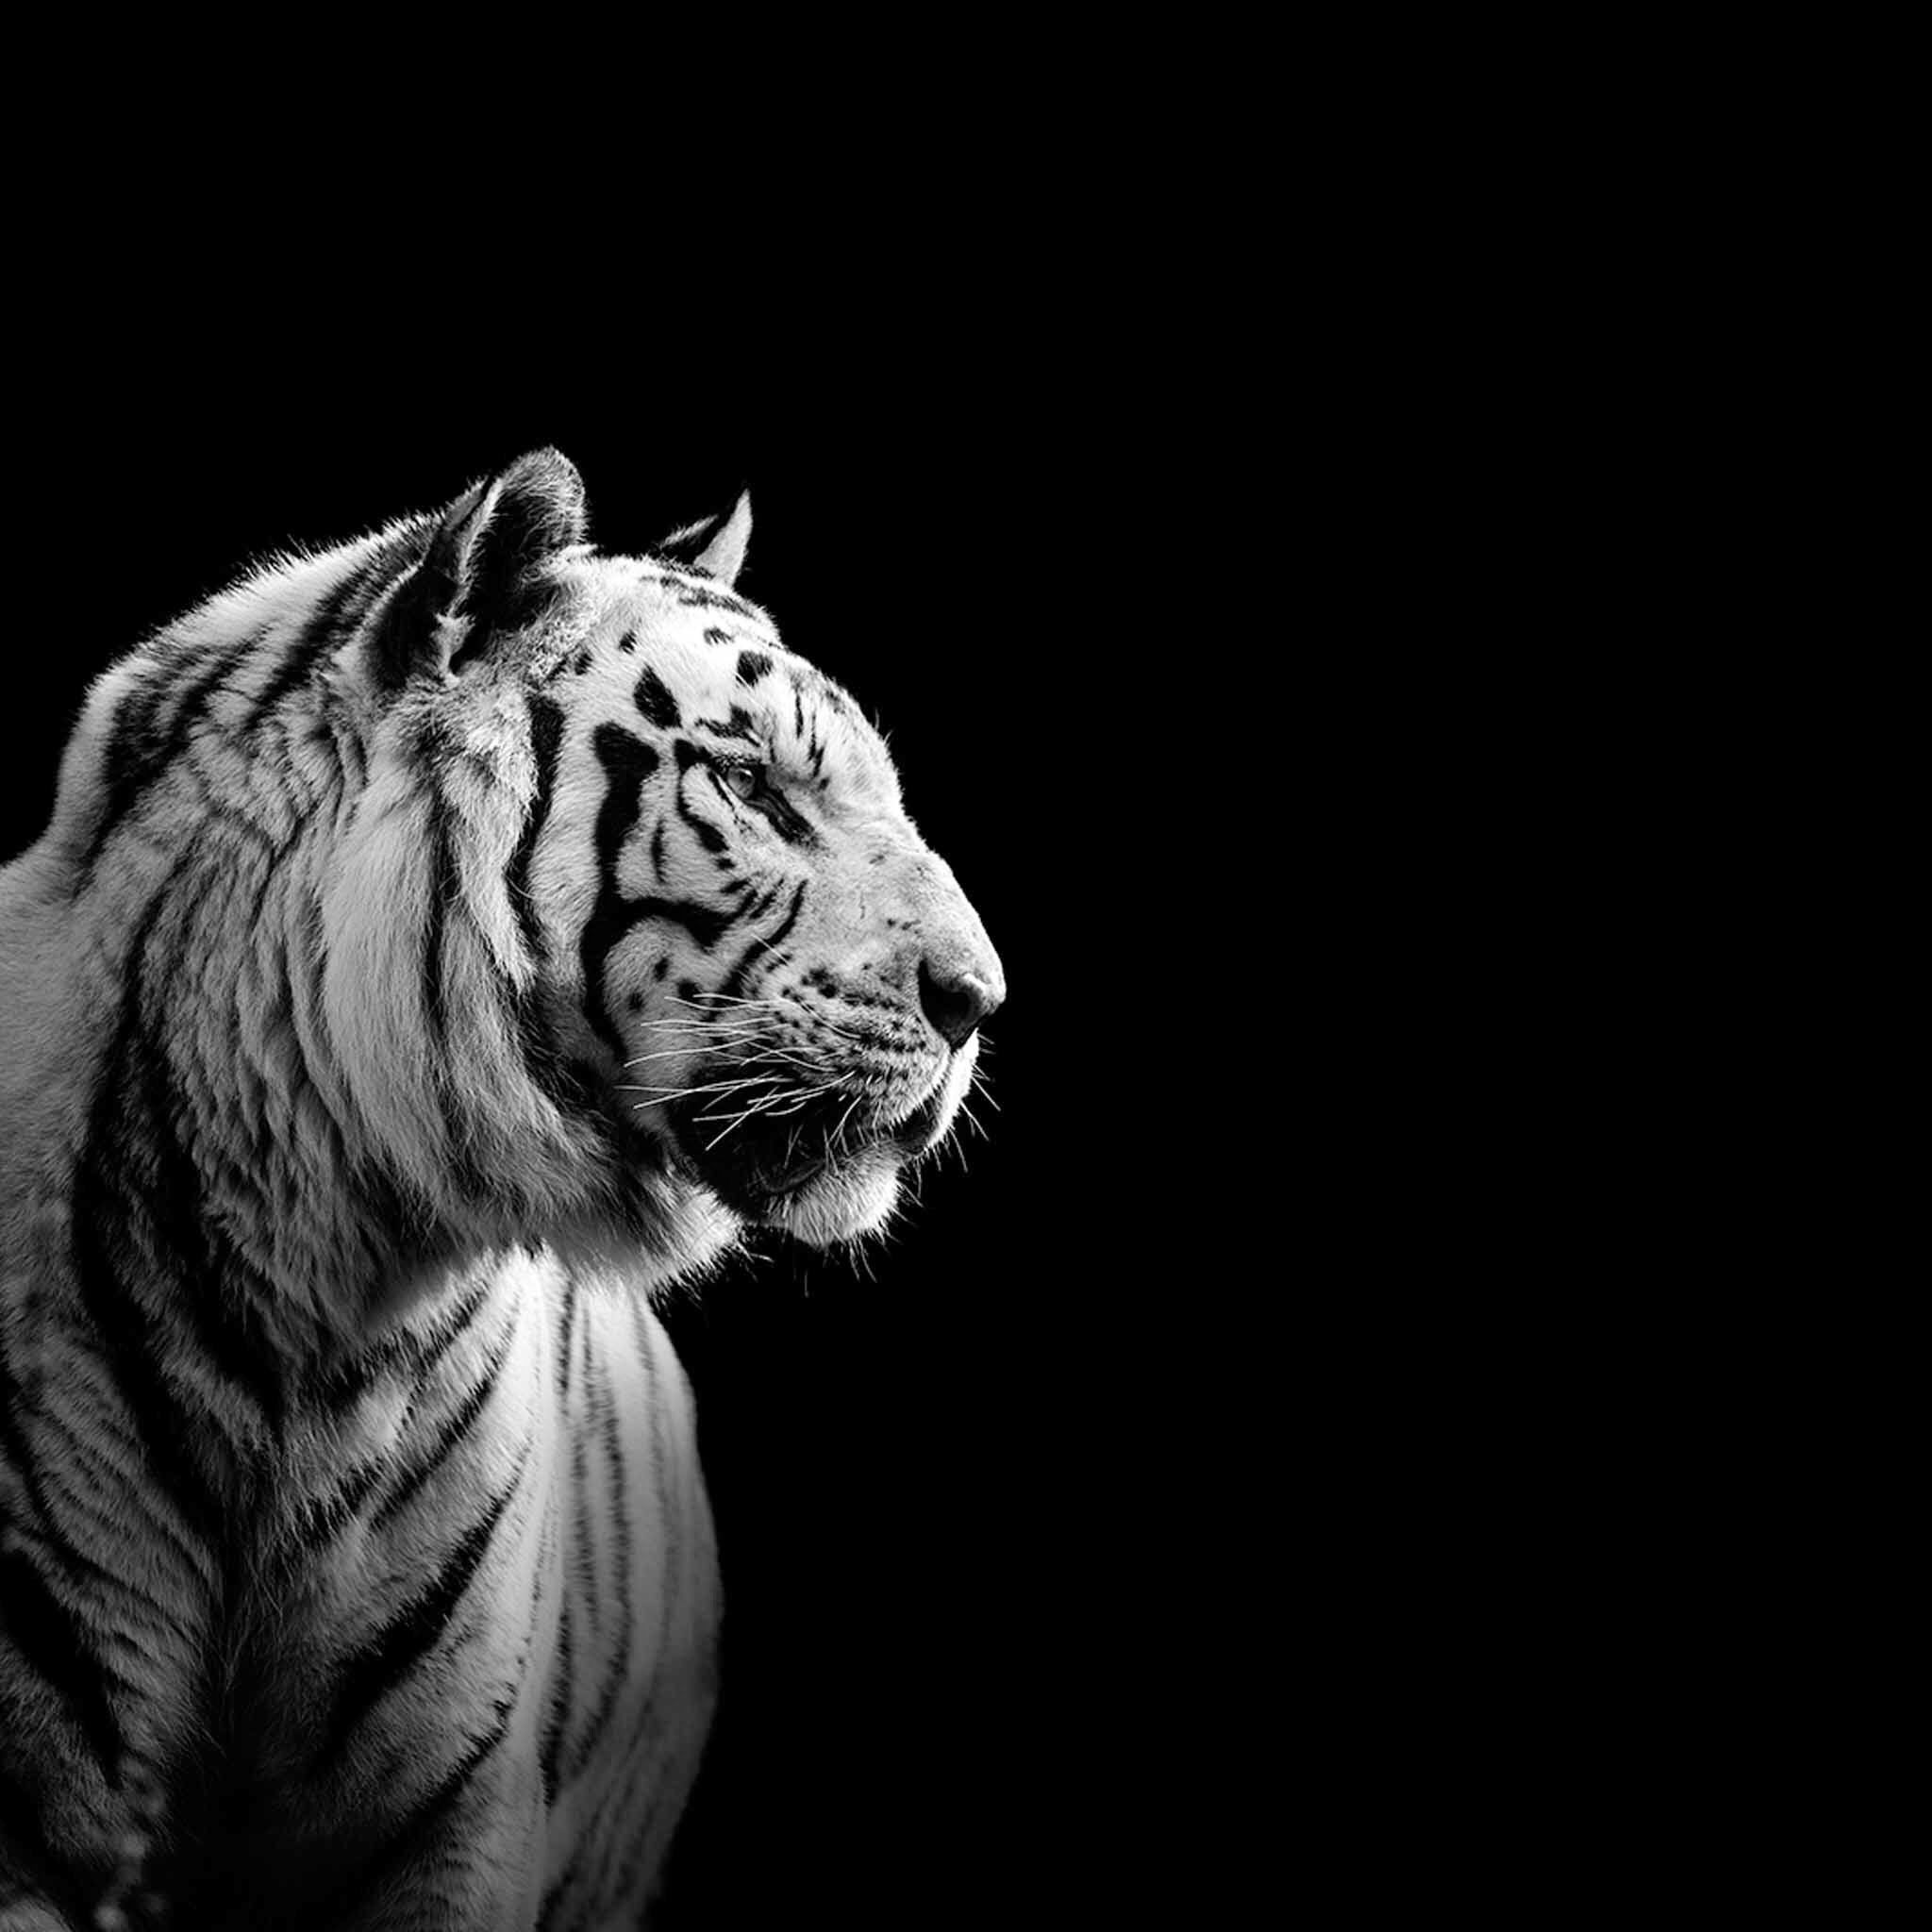 This White Tiger Is Staring In To The Darkness Tiger Images Tiger Wallpaper Snow Tiger